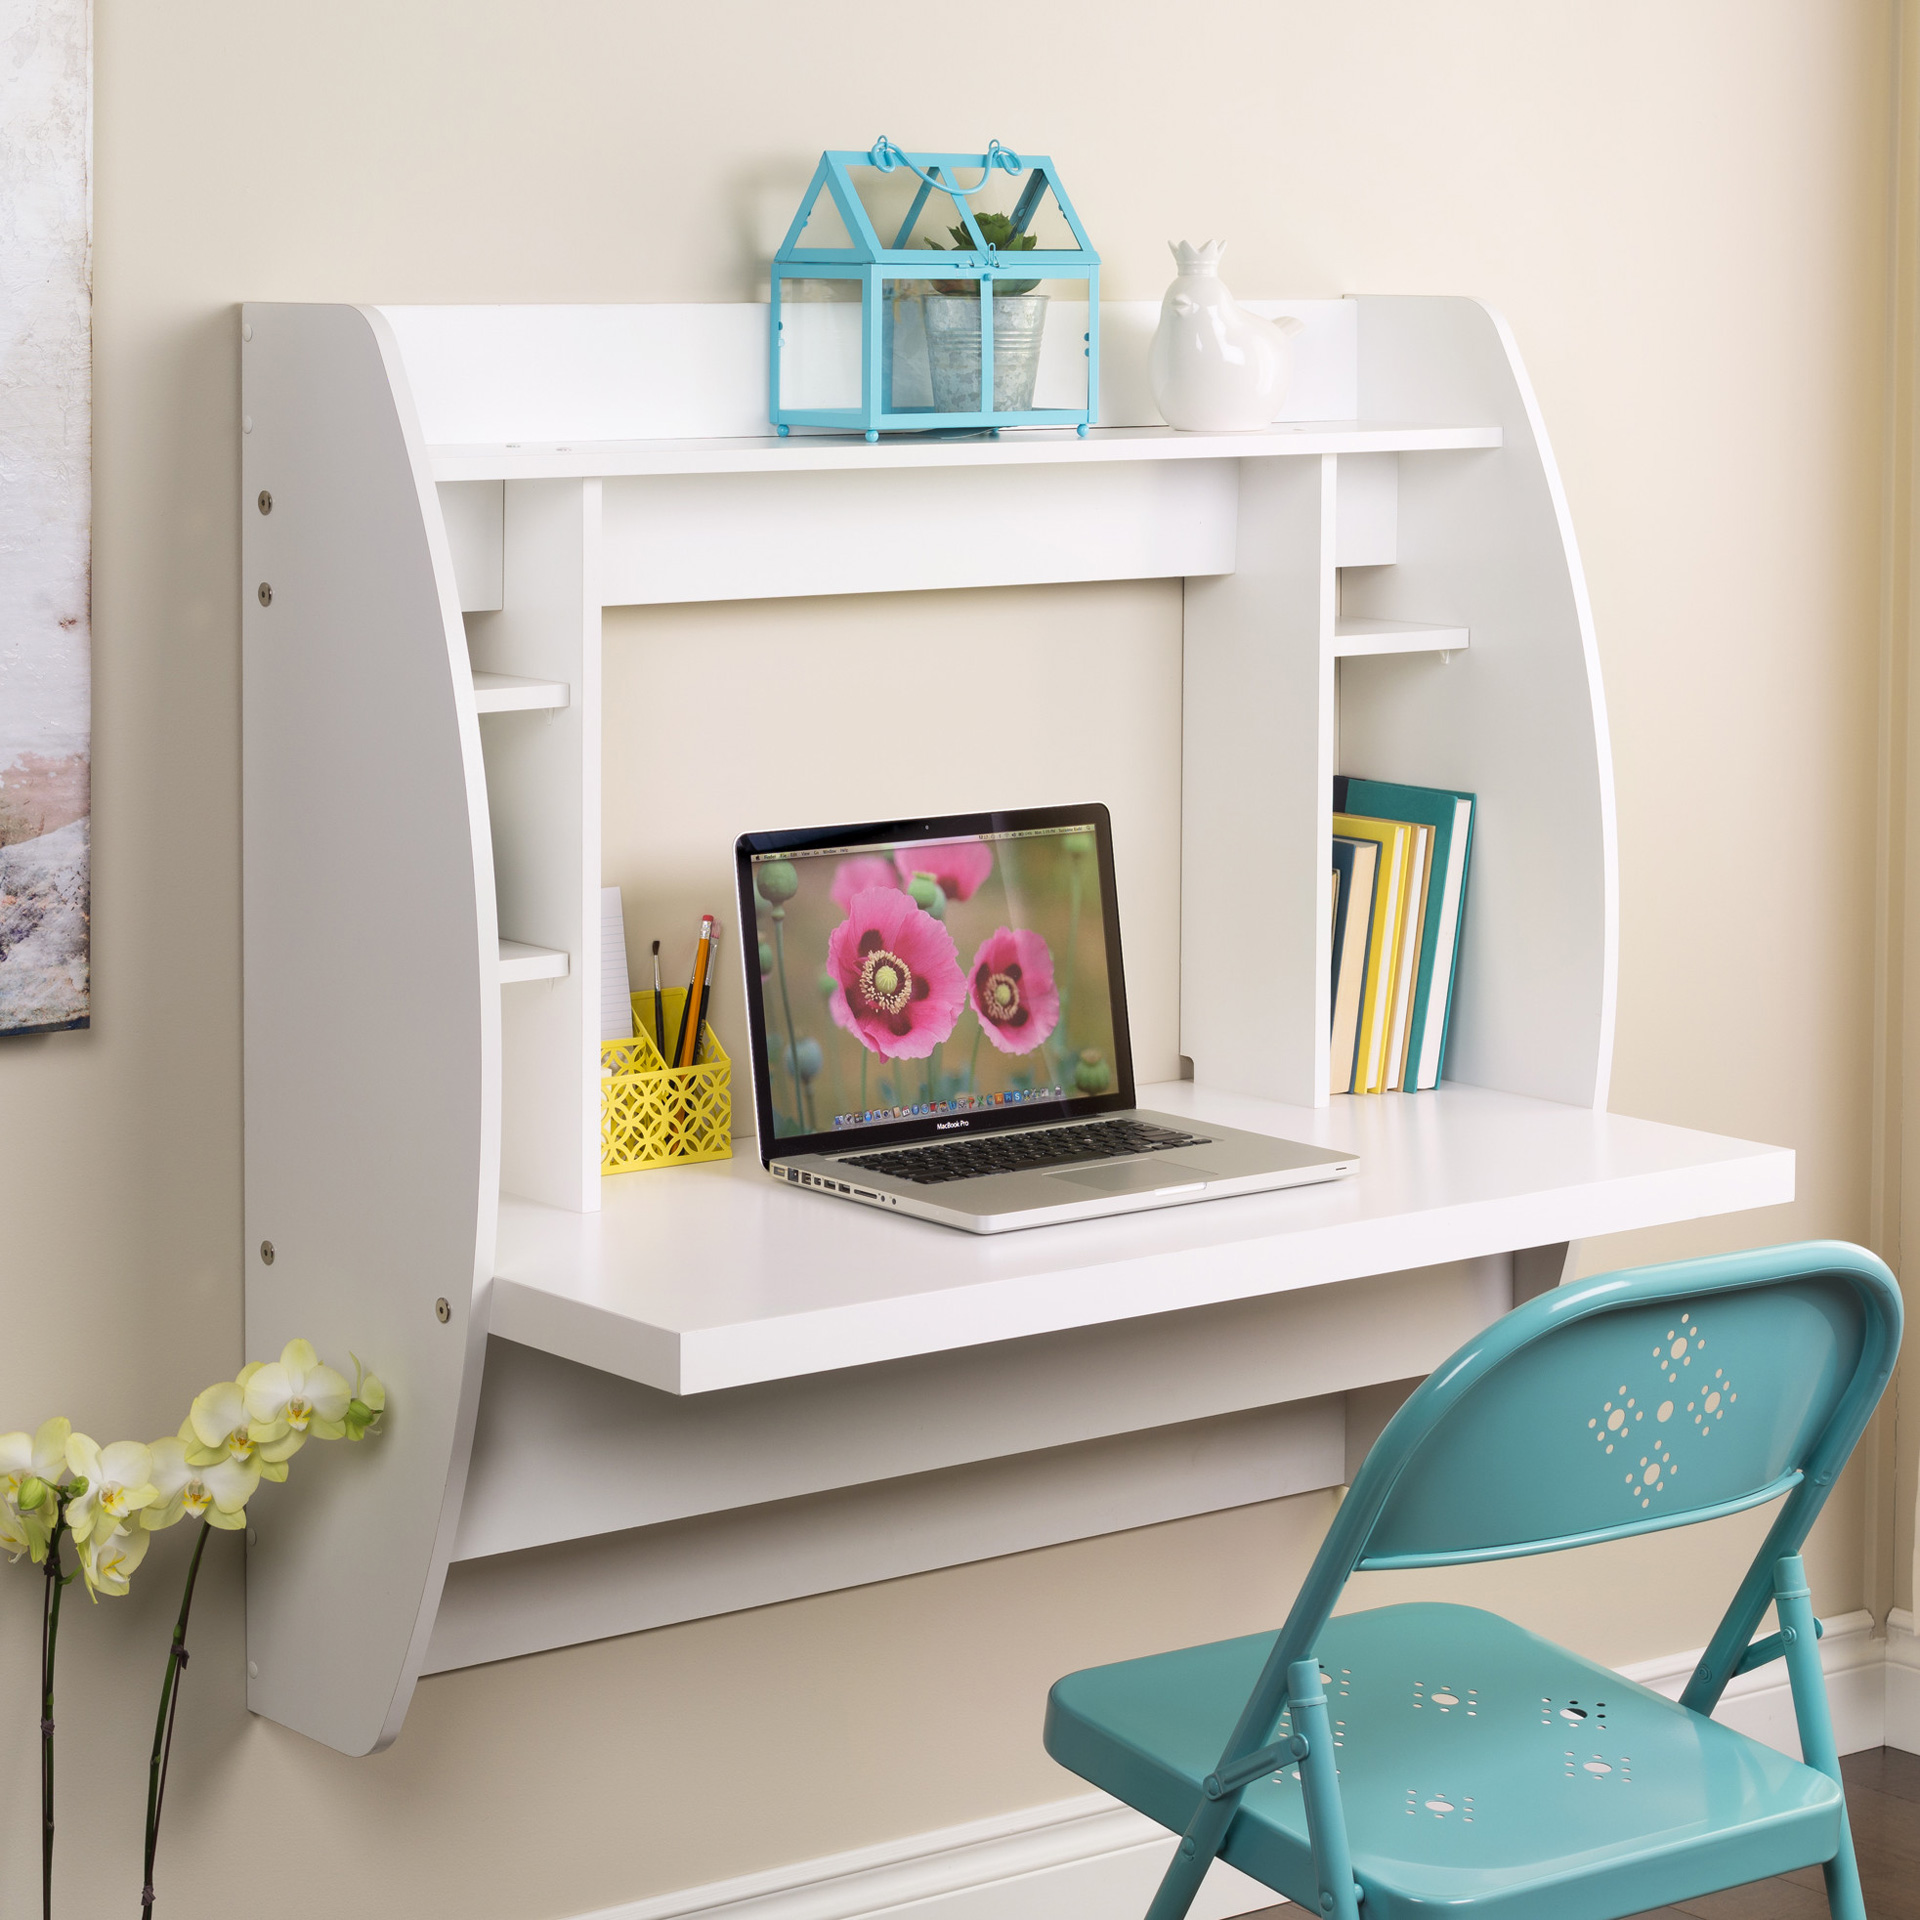 Wall Mounted Folding Desk Ideas For Small Space Living